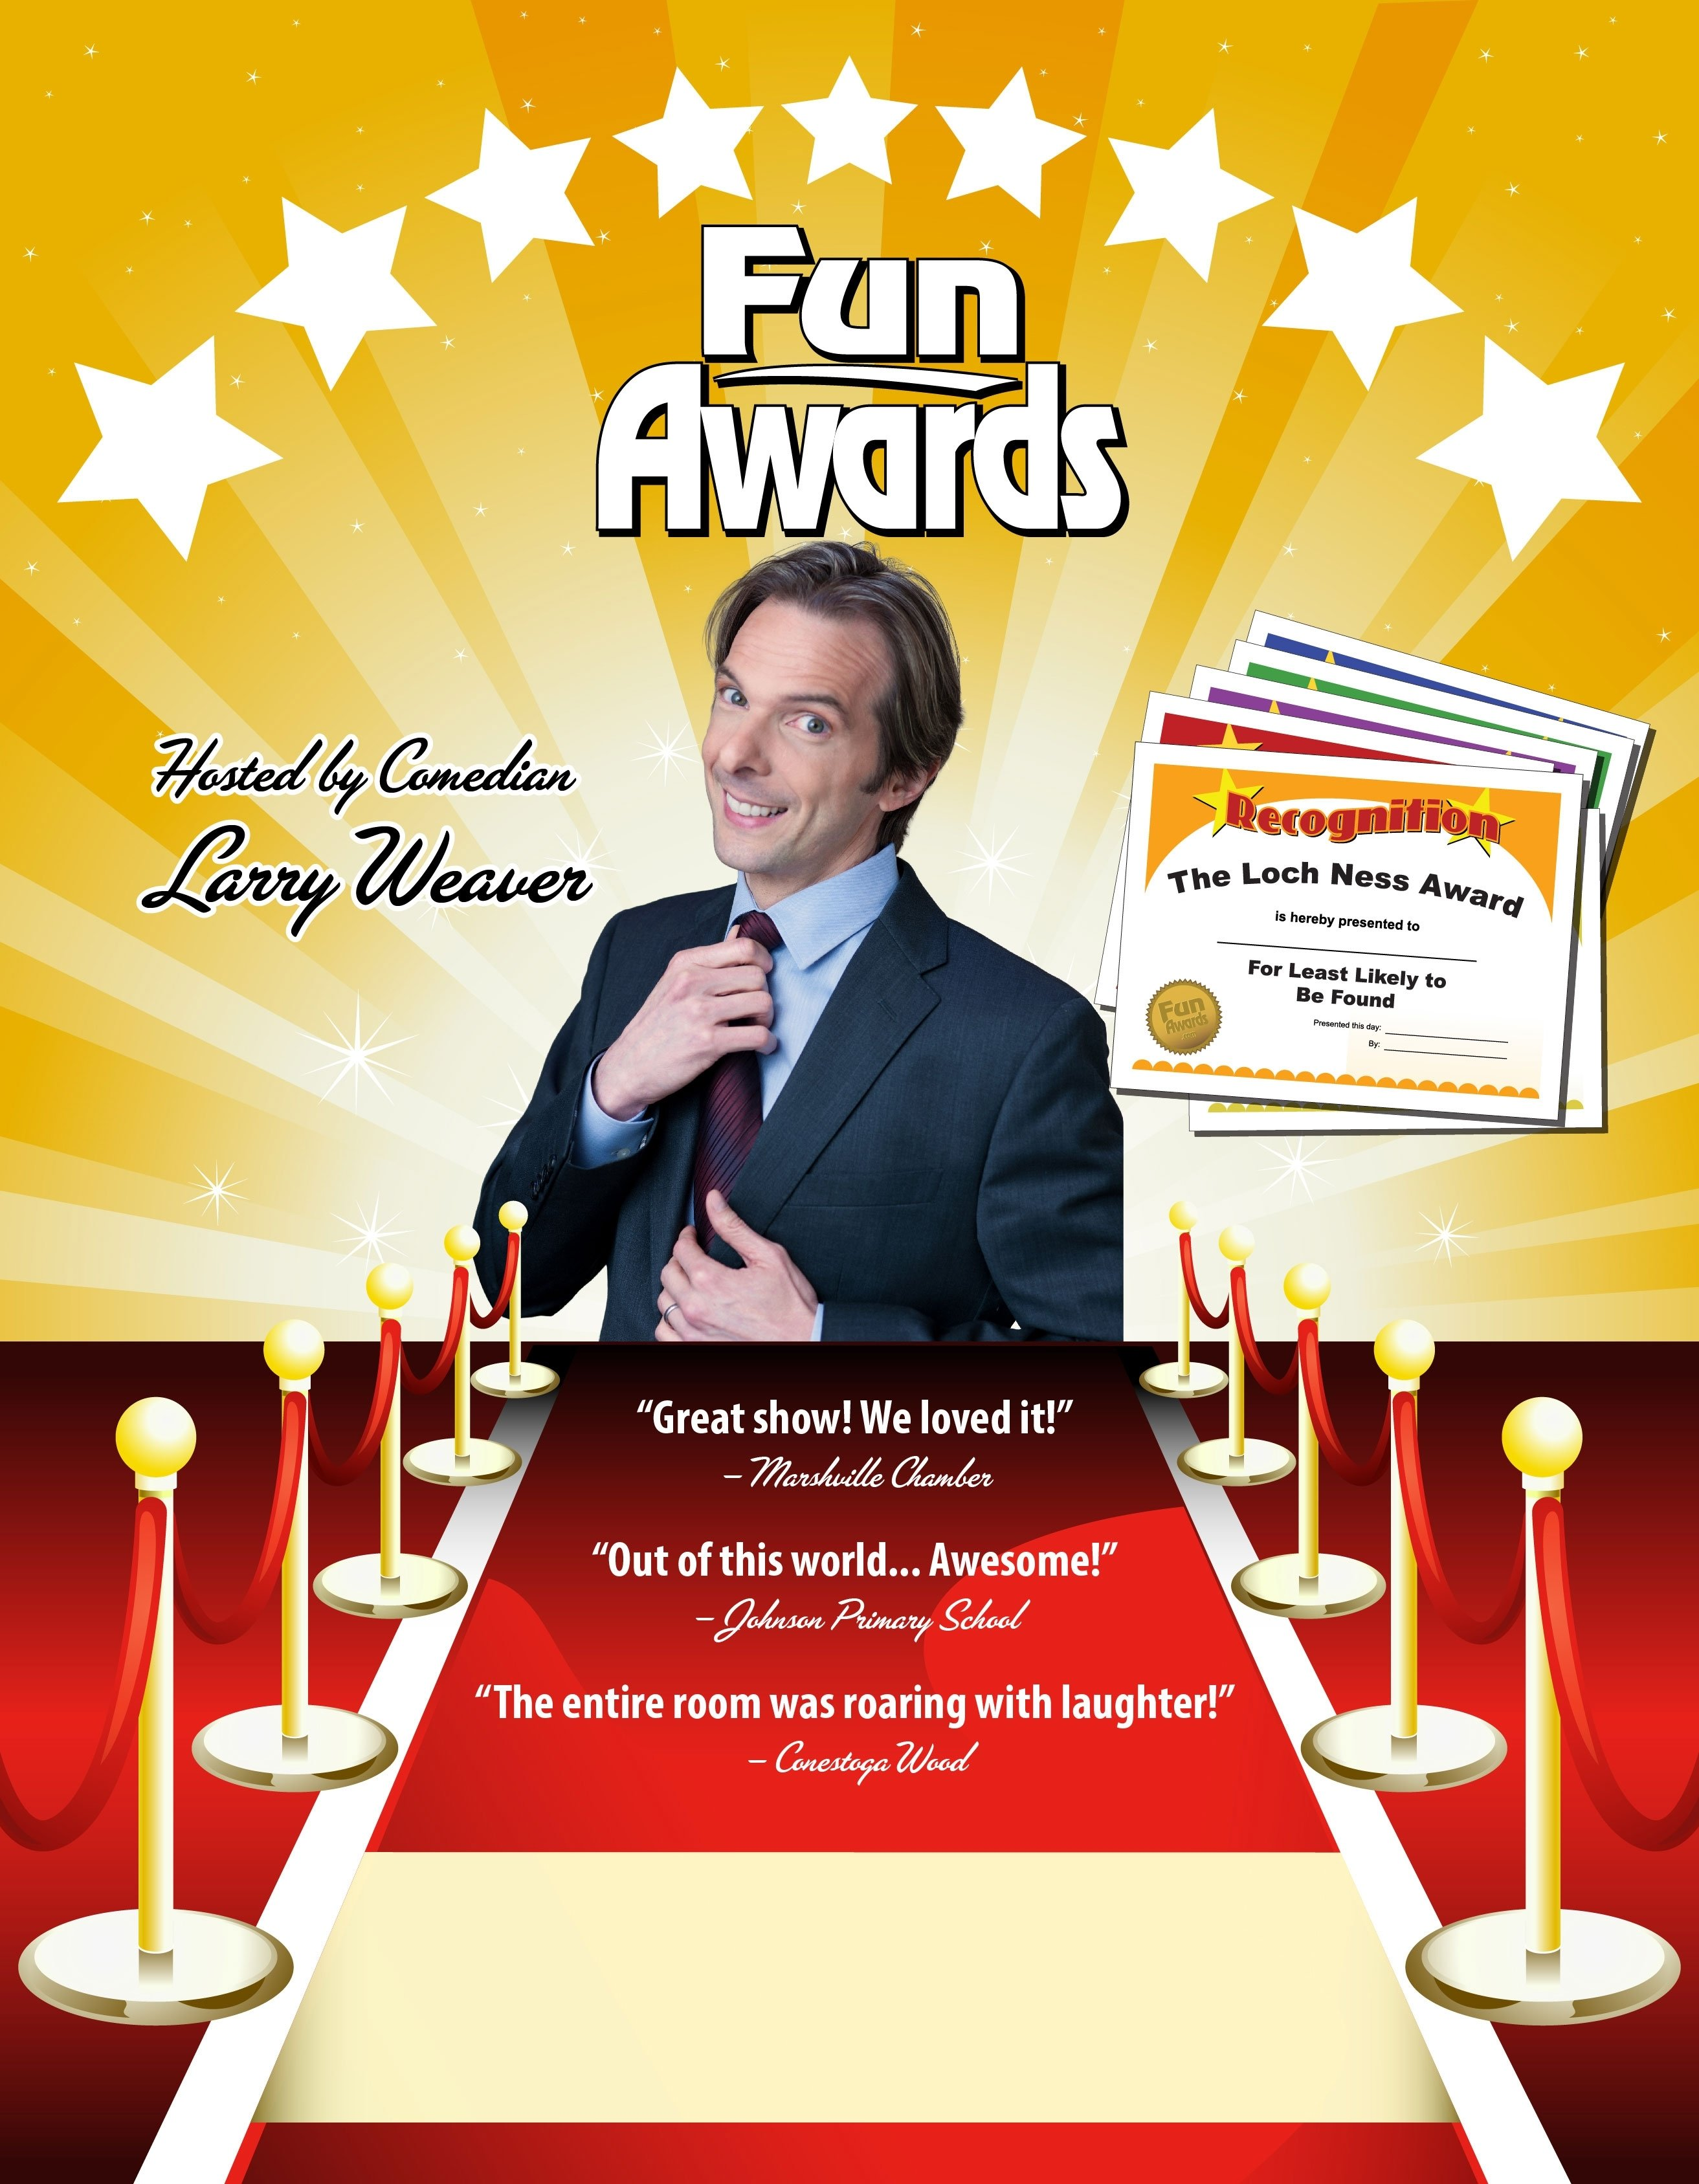 10 Beautiful Funny Award Ideas For Friends funny awards the funny employee awards show for your staff office 2021